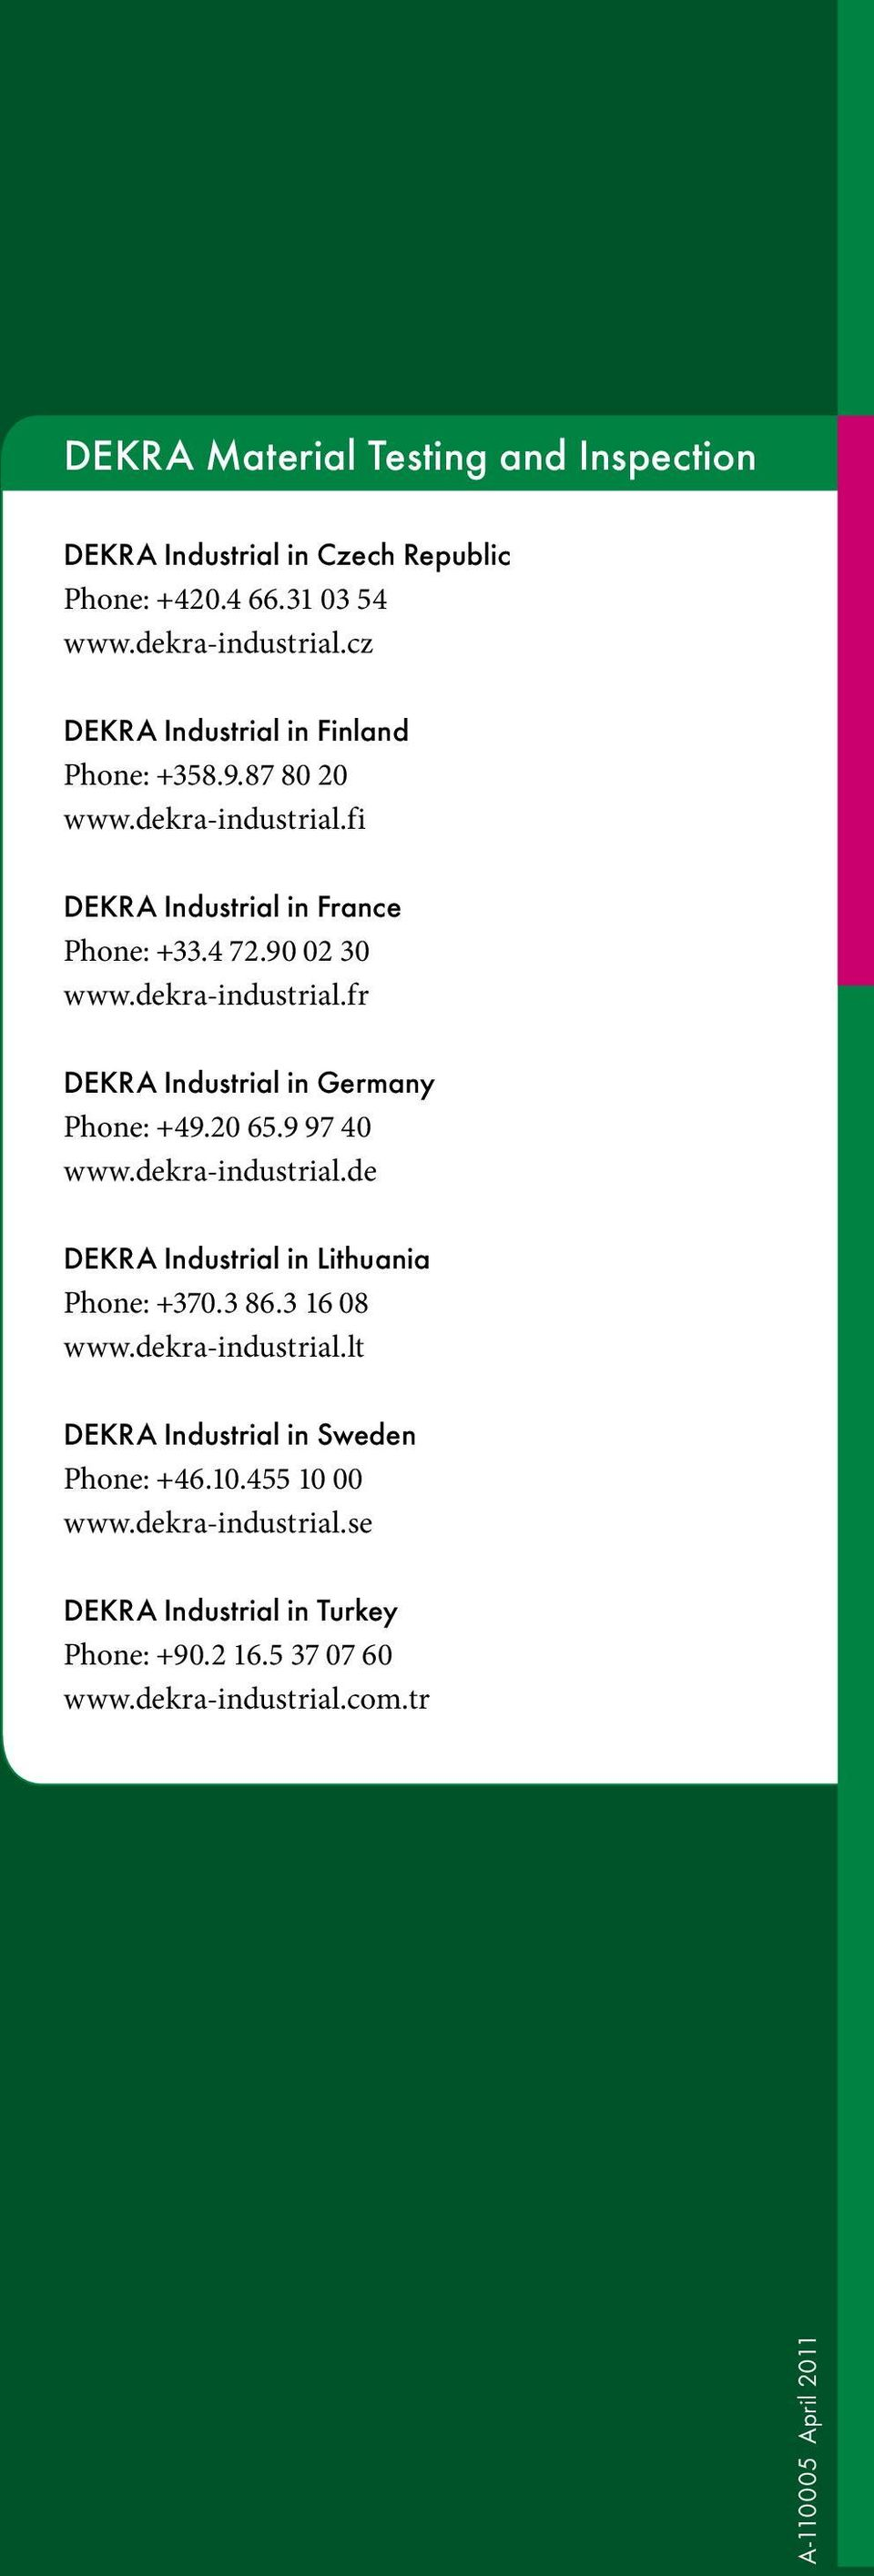 20 65.9 97 40 www.dekra-industrial.de DEKRA Industrial in Lithuania Phone: +370.3 86.3 16 08 www.dekra-industrial.lt DEKRA Industrial in Sweden Phone: +46.